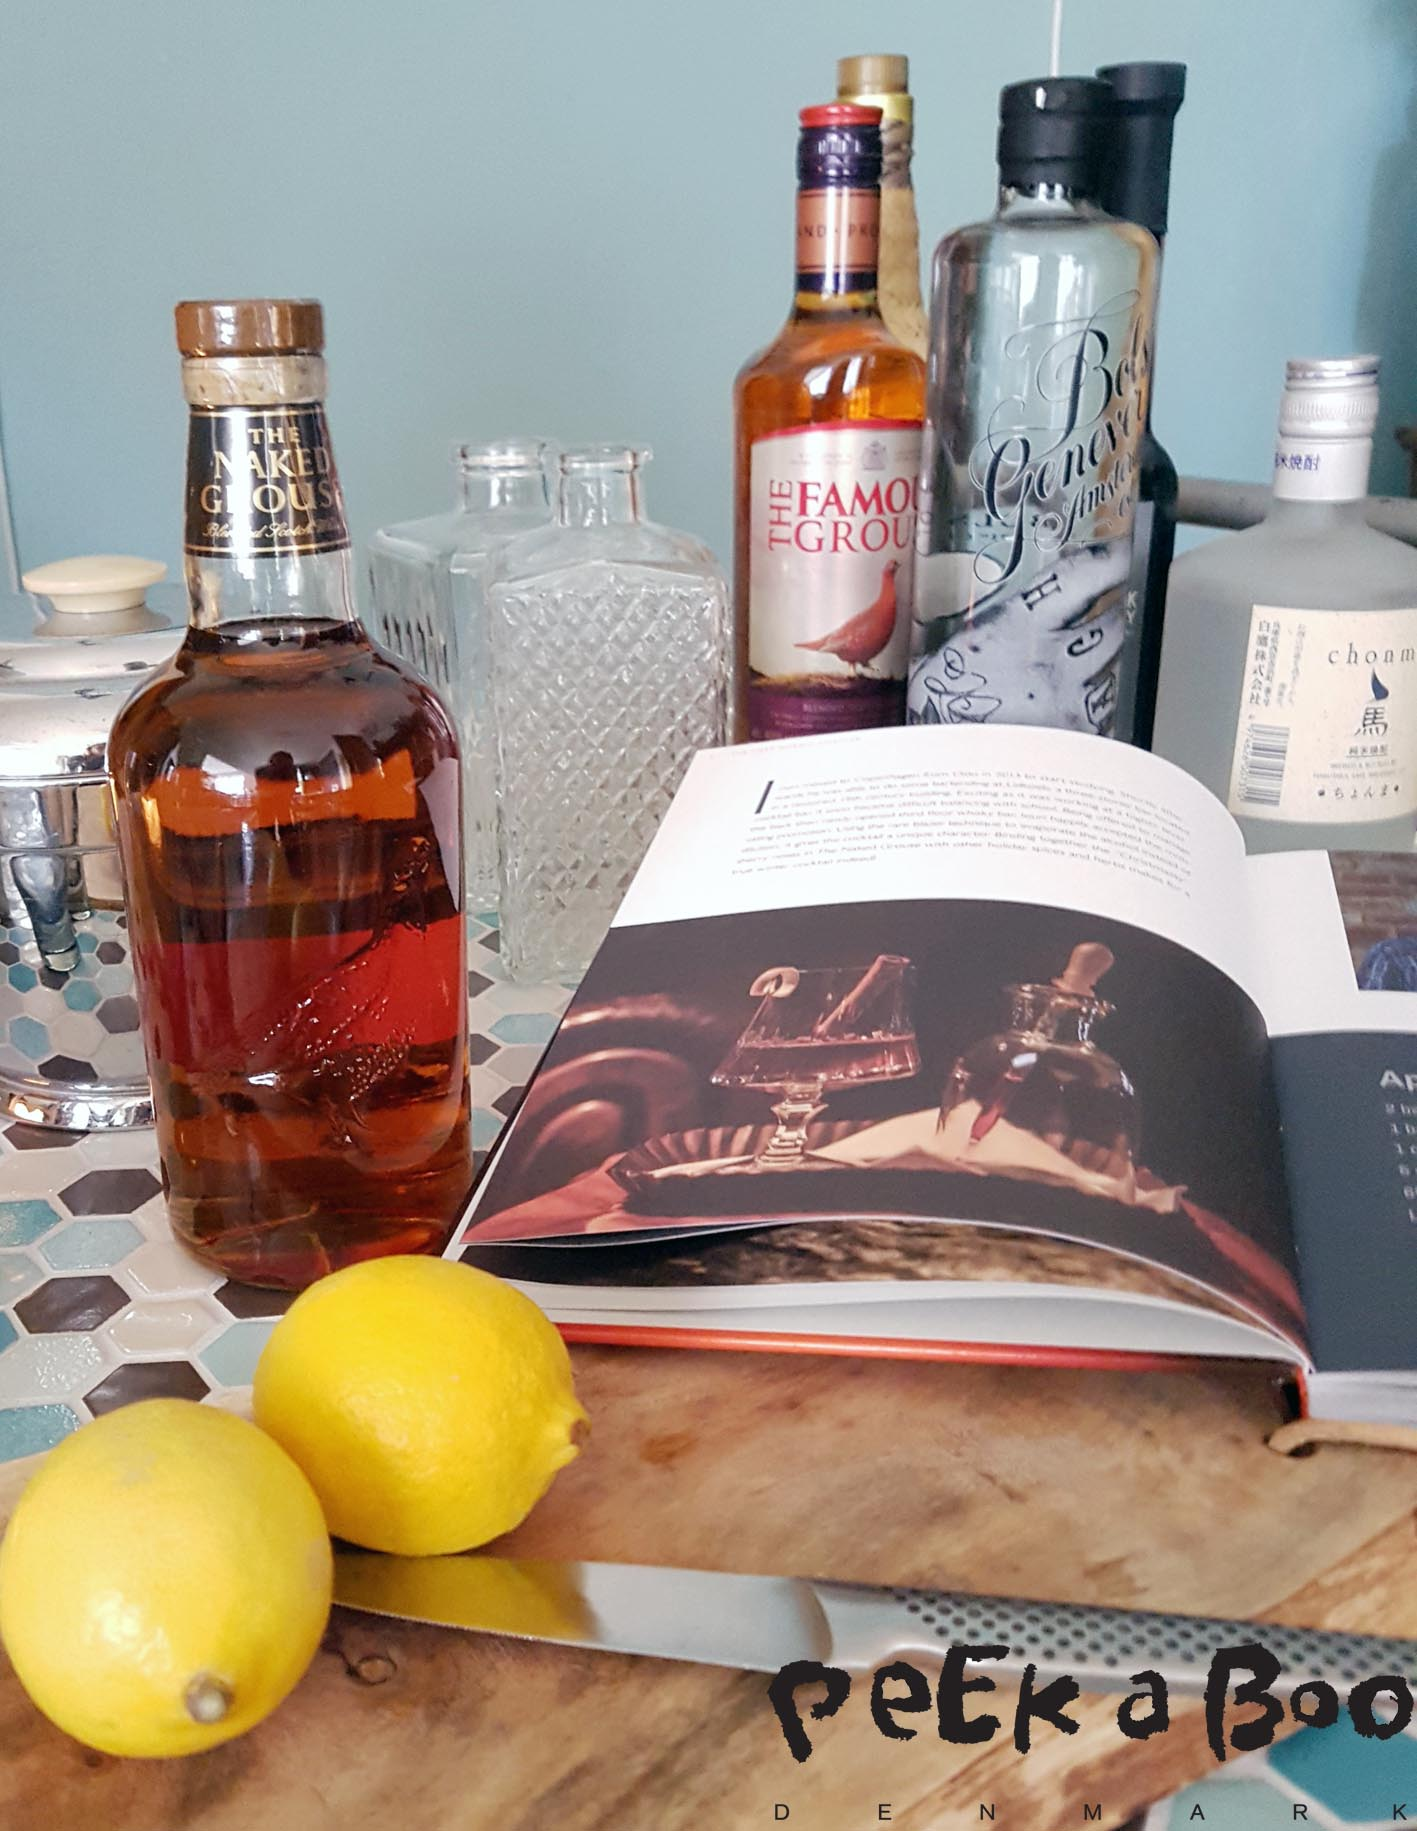 The winner of the naked grouse whiskey and drinks book is Martina Y.